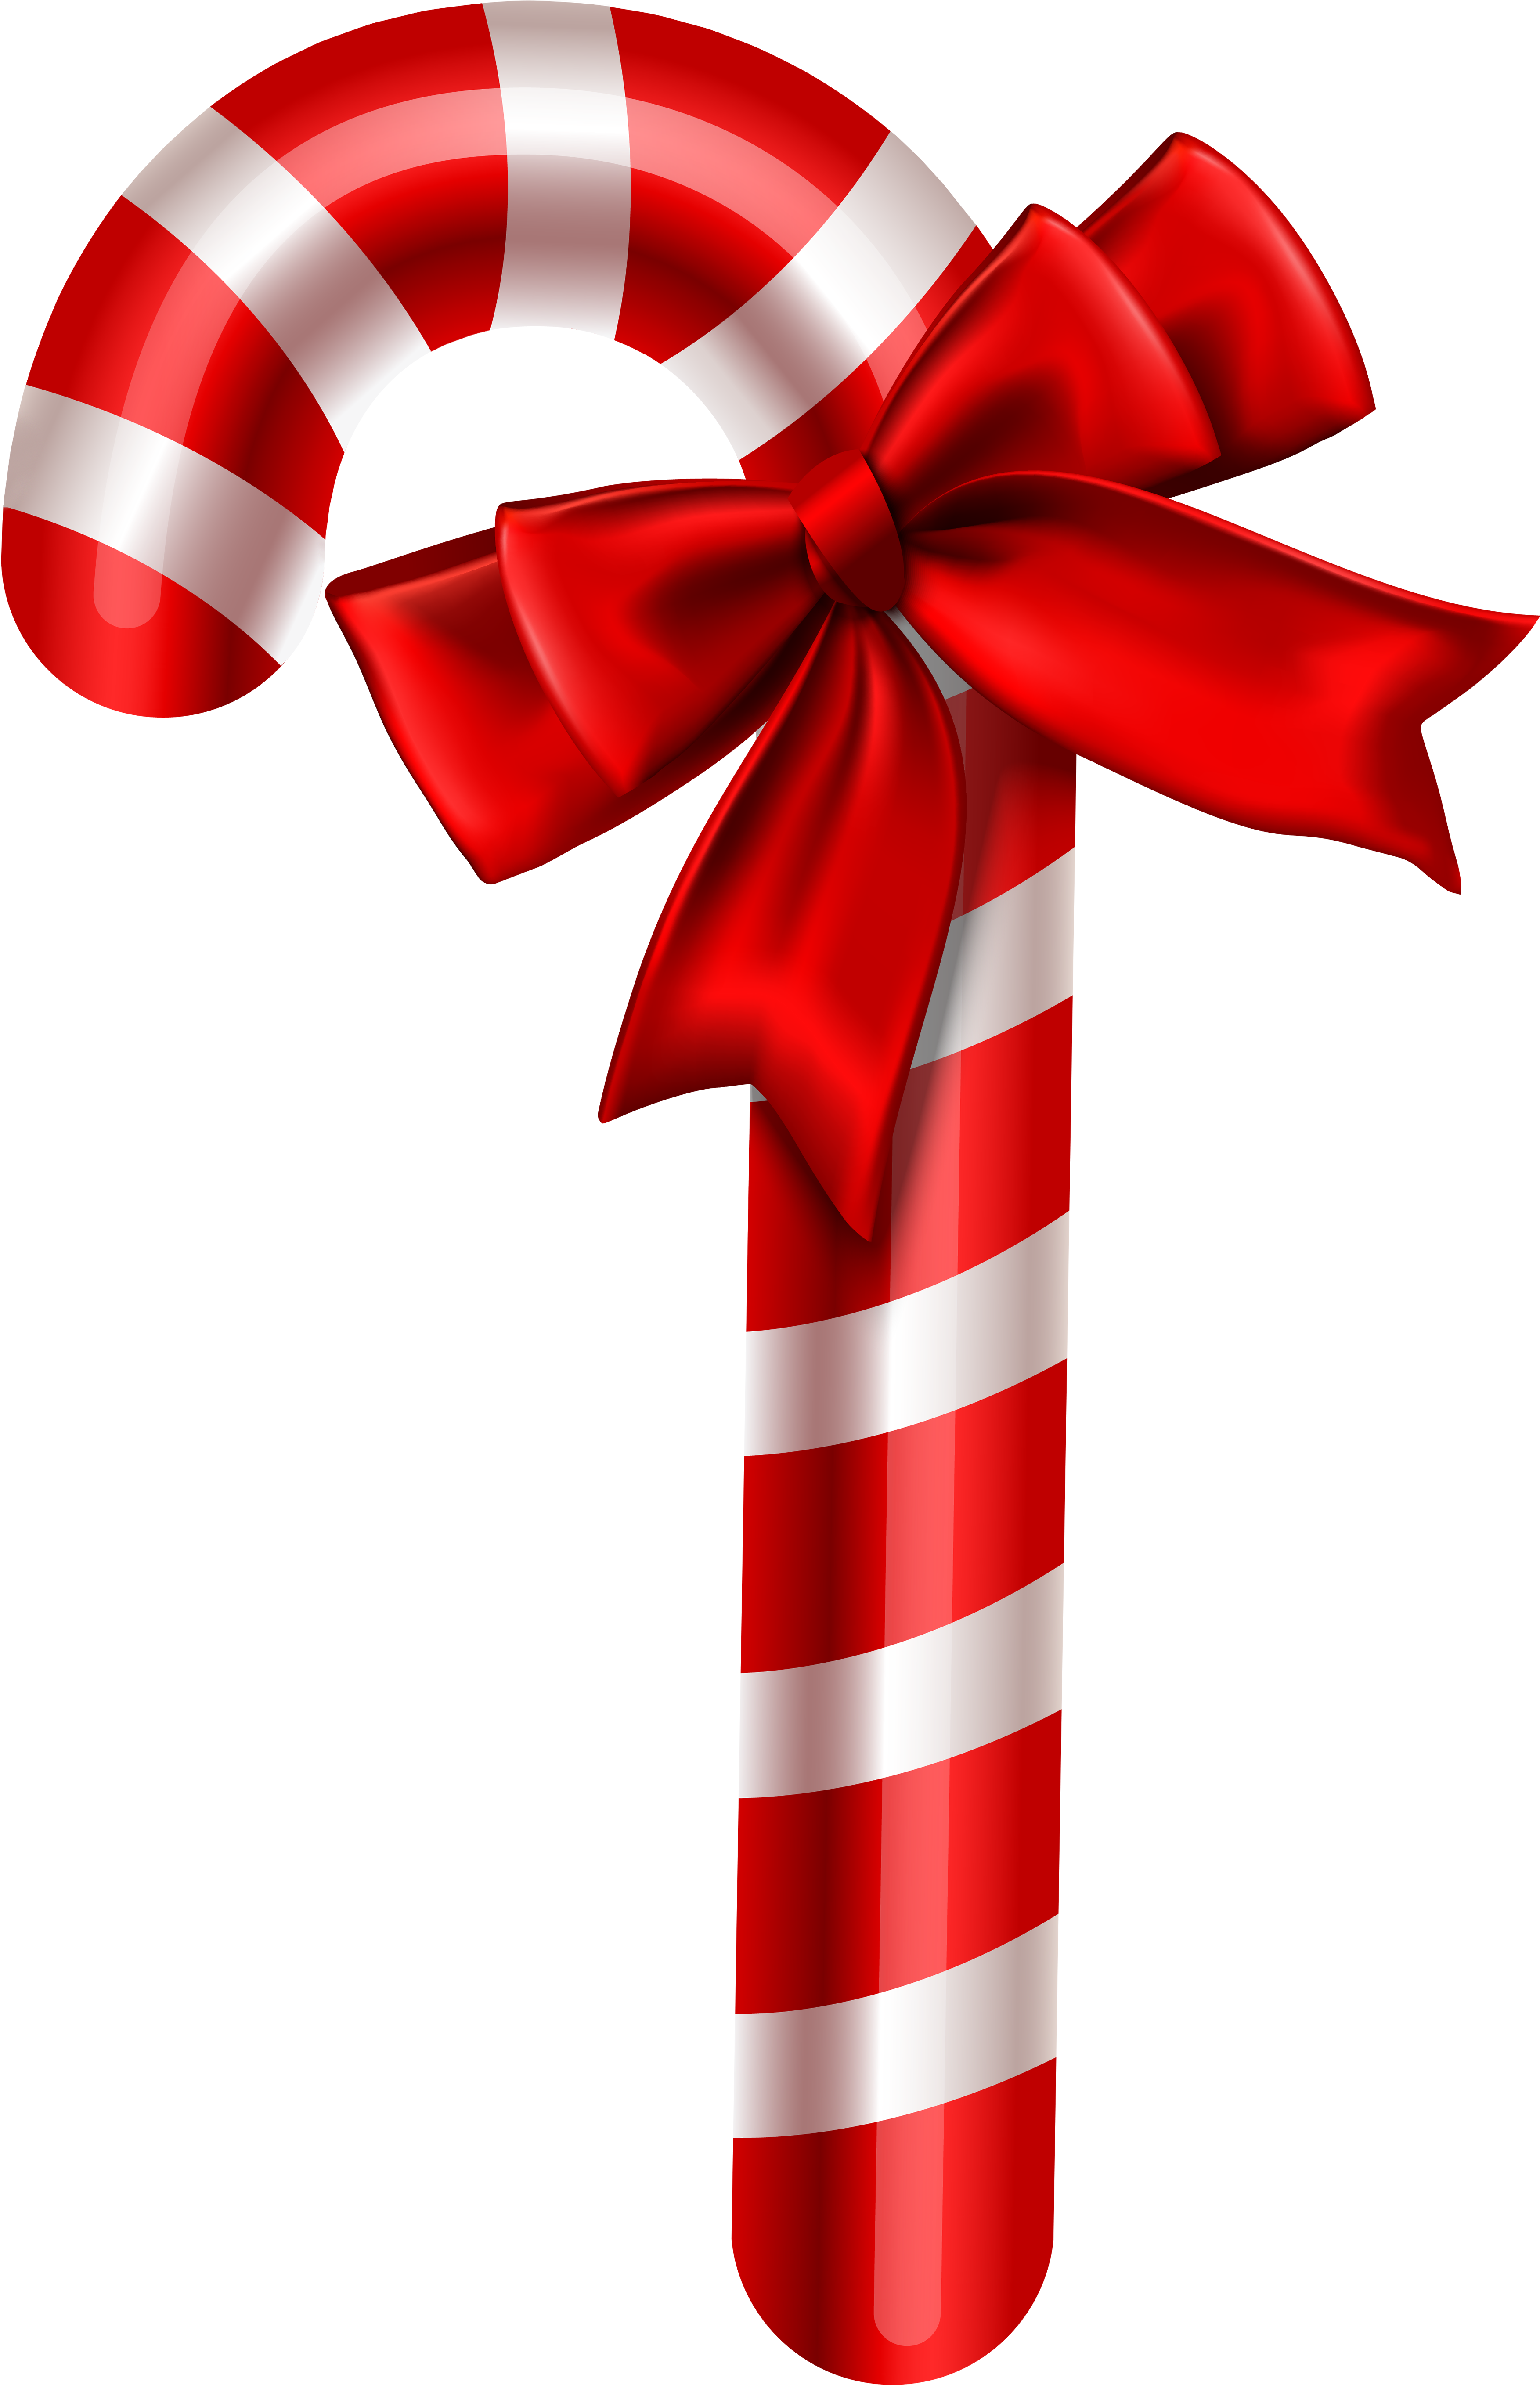 Real candy png. Christmas images free download